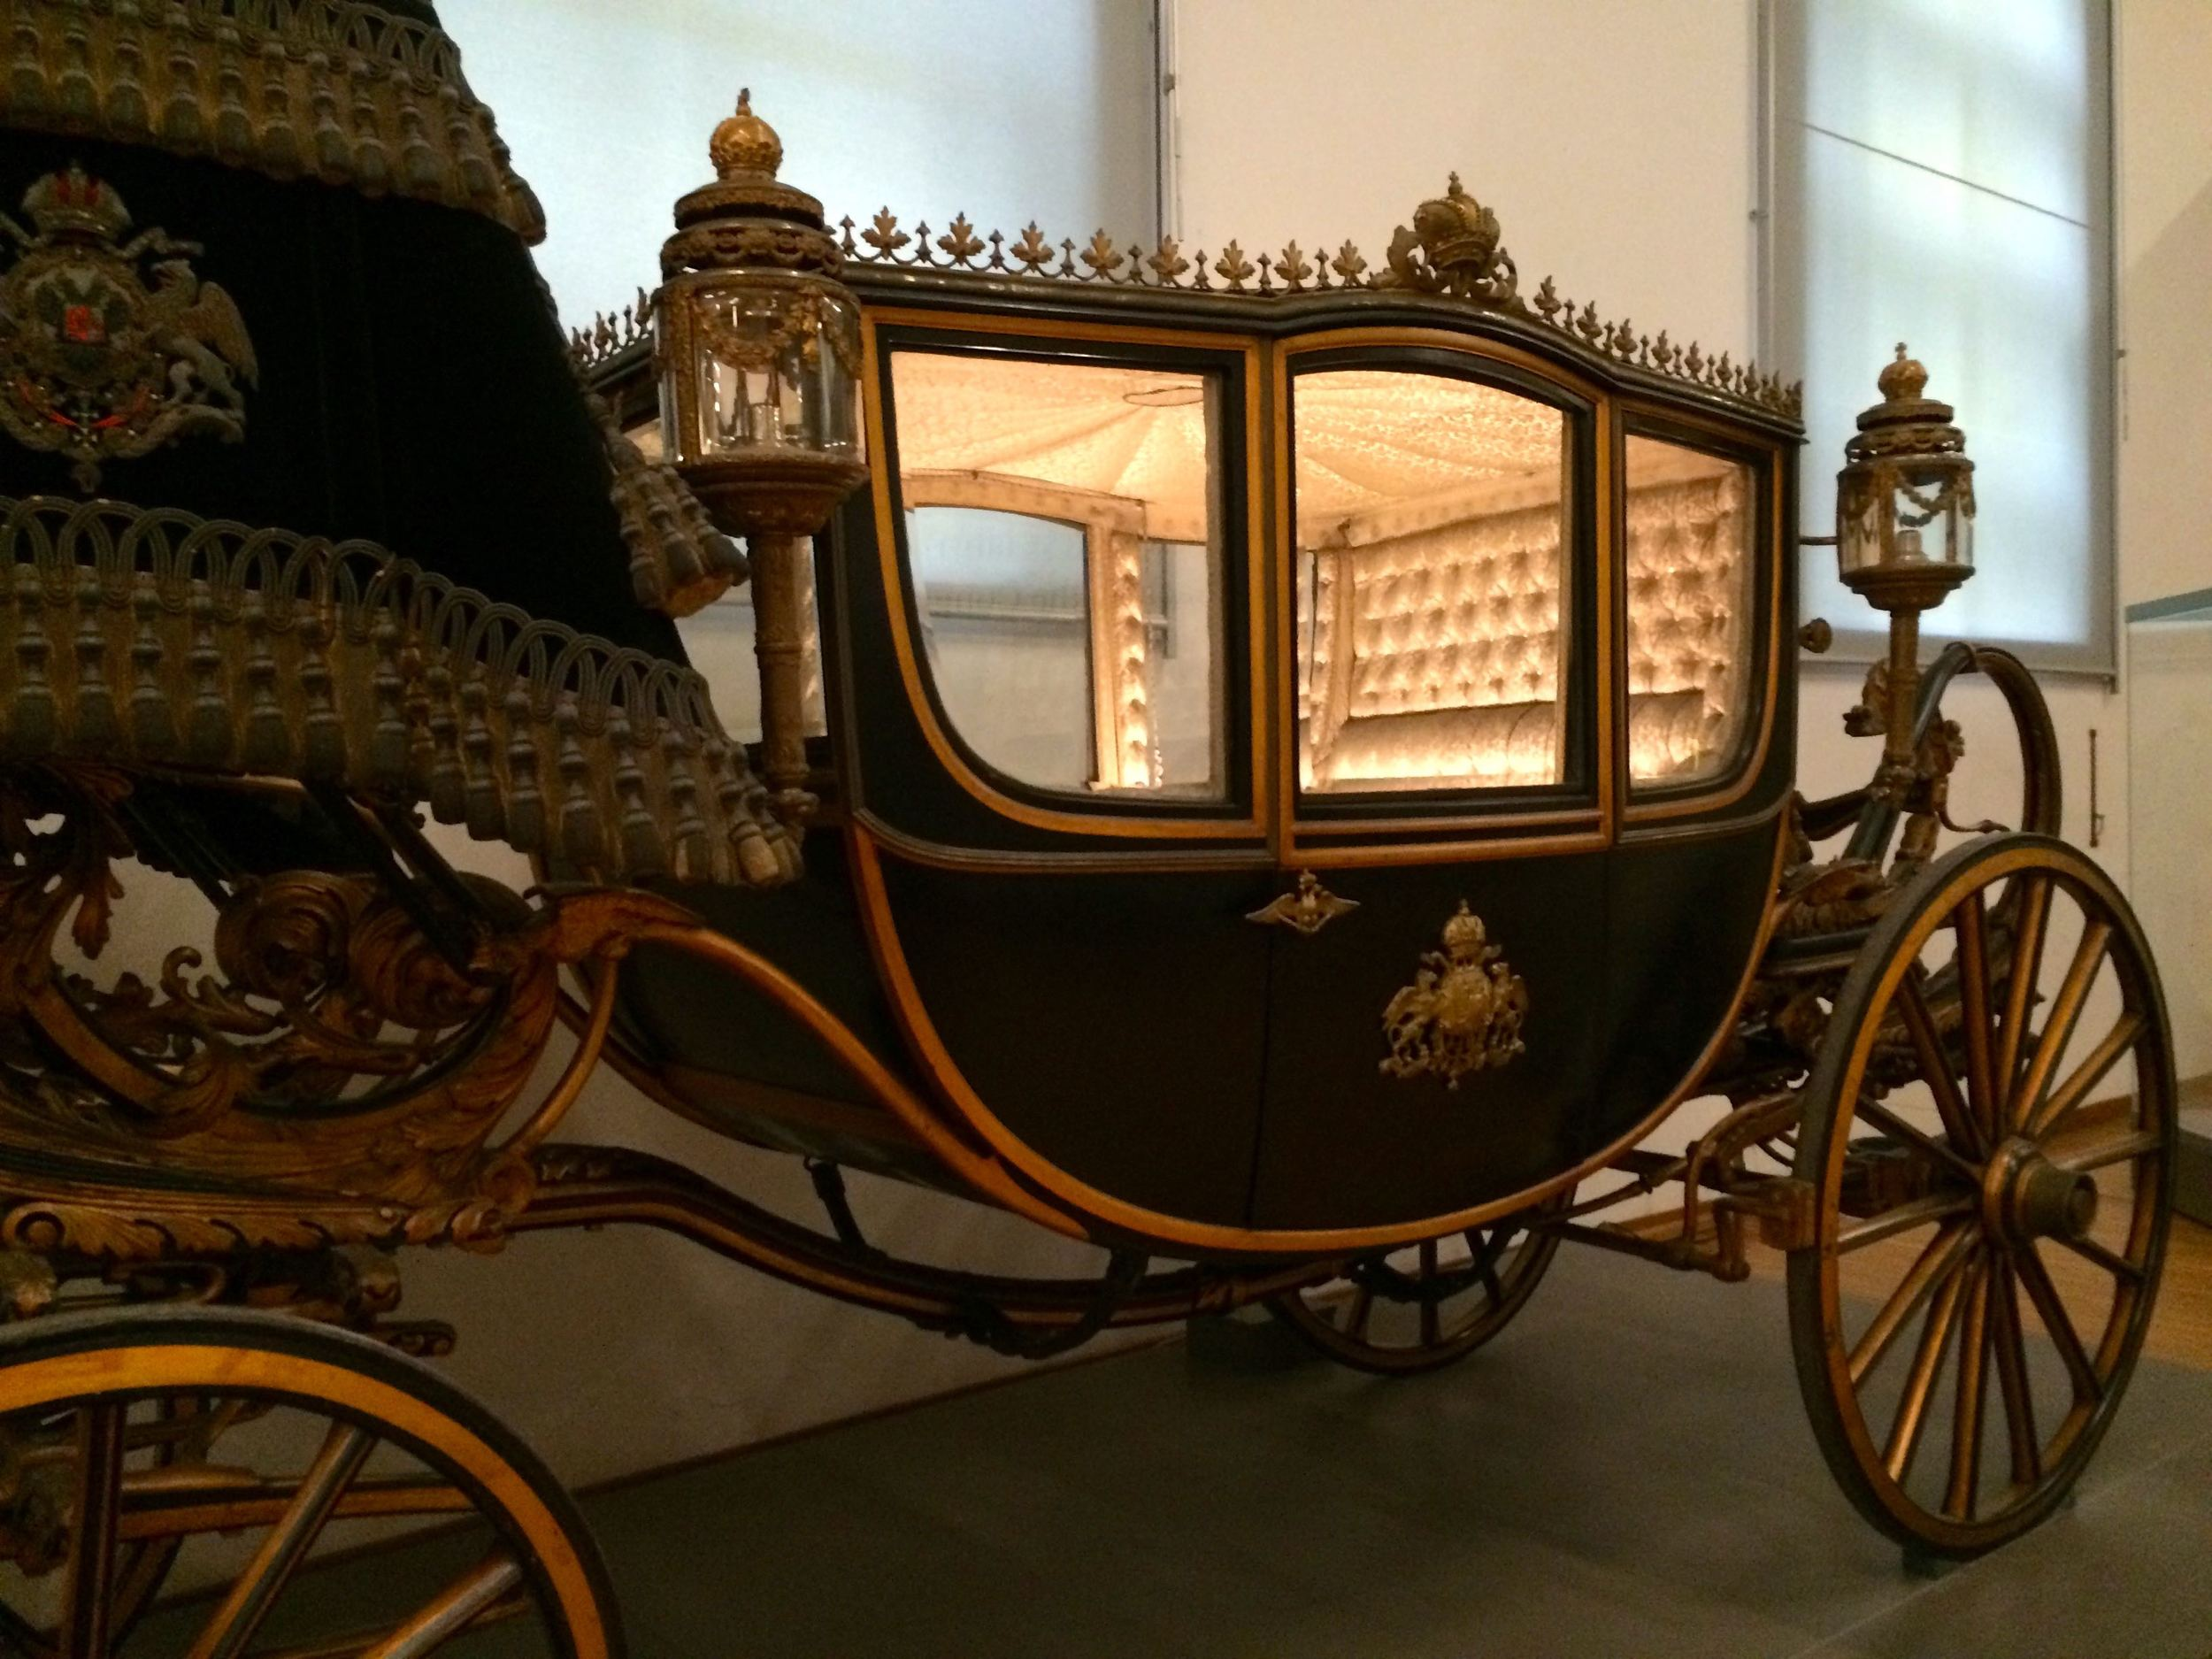 Can you imagine rolling down the street in this thing back in the day? Looking at all the peasants? Waving at all those sad, little people?